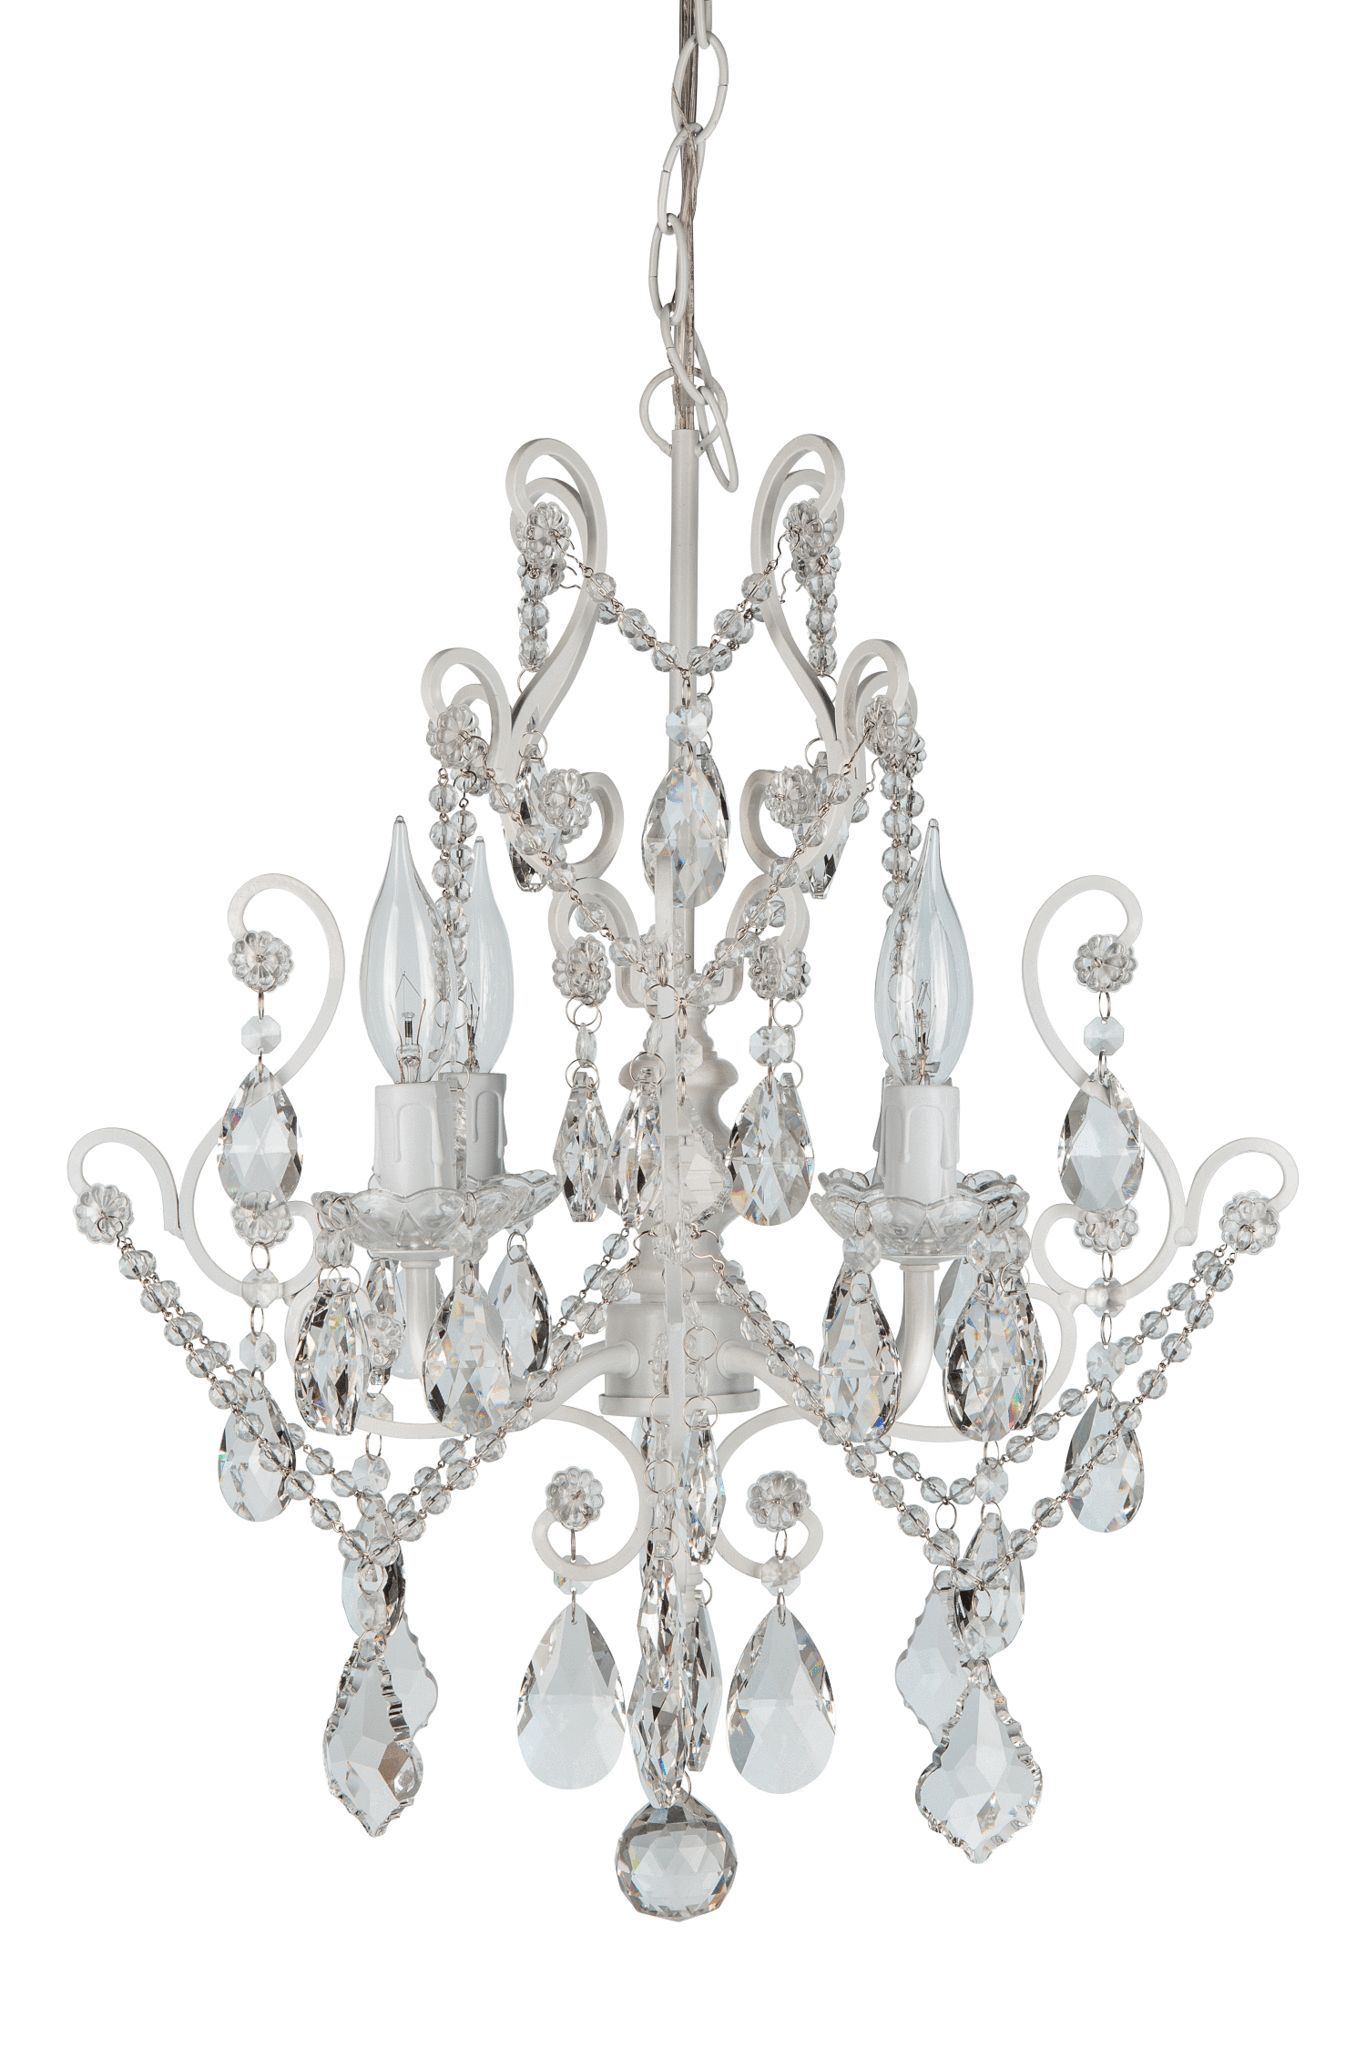 4 Light Vintage Crystal Plug In Chandelier White